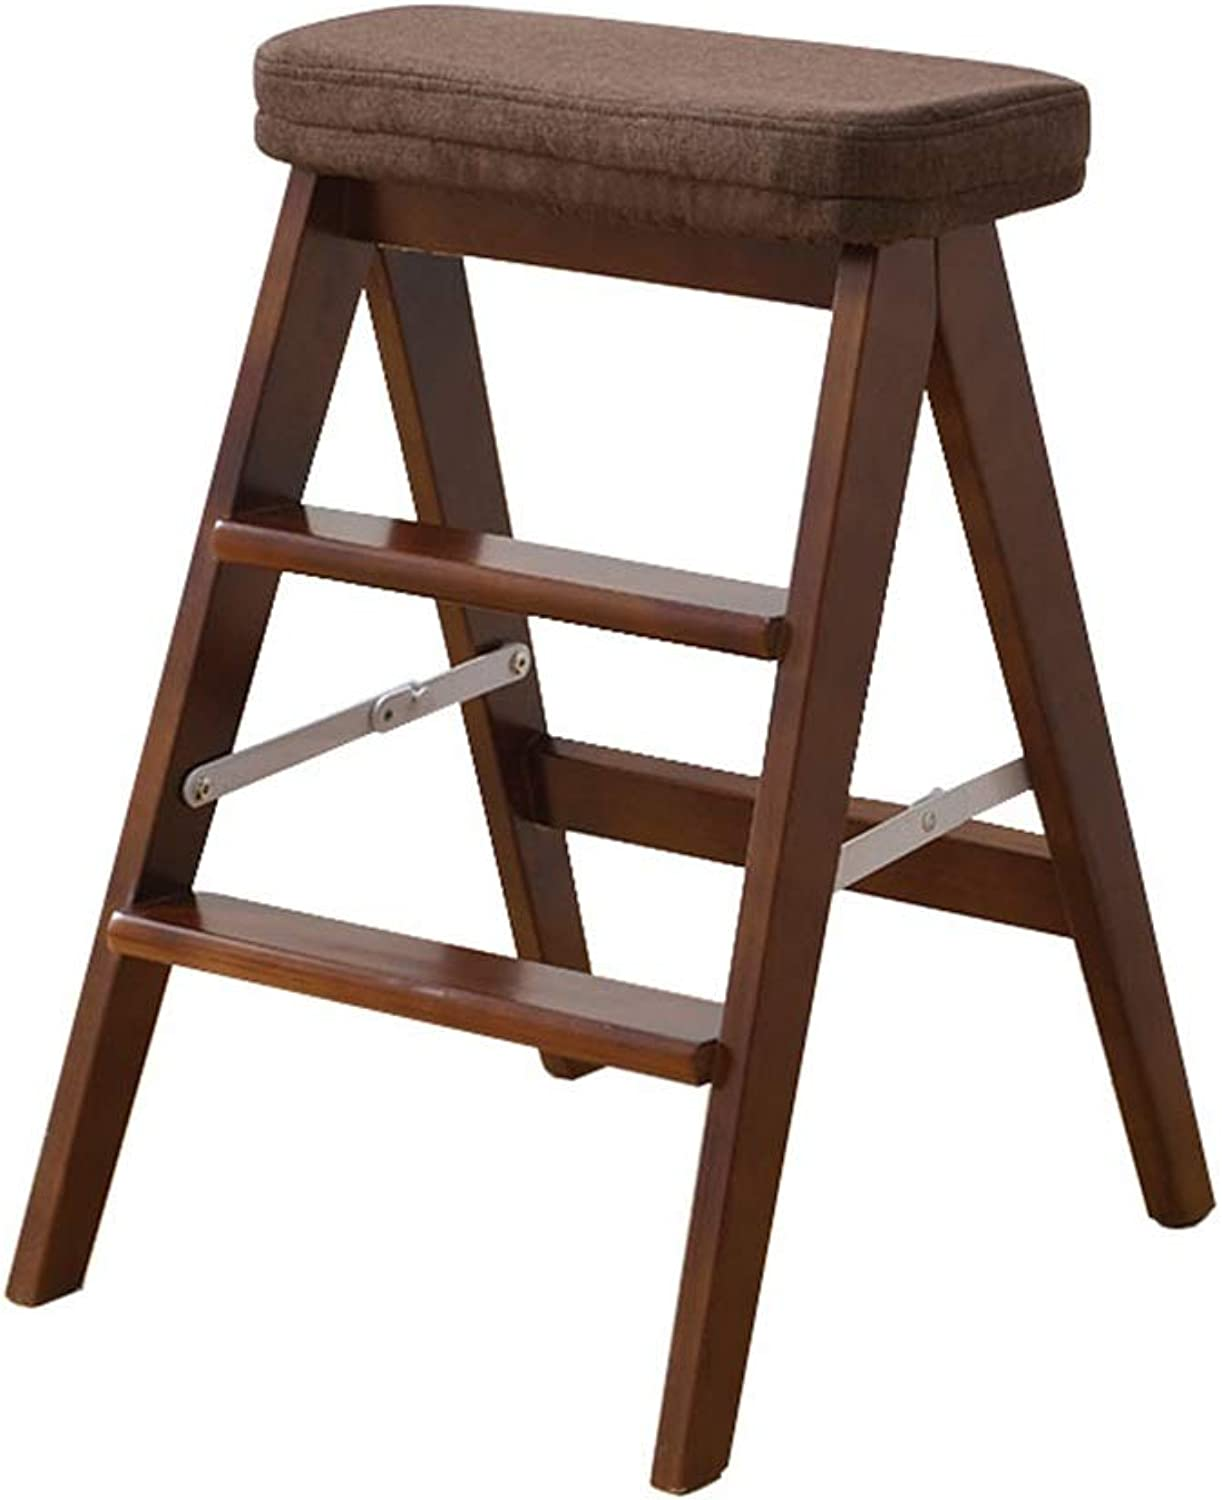 Folding Portable Stepladder Stool with Brown Sponge Cushion,Multipurpose Small Wood Ladder Chair Creative Home Kitchen Step Ladder Max Load 150kg